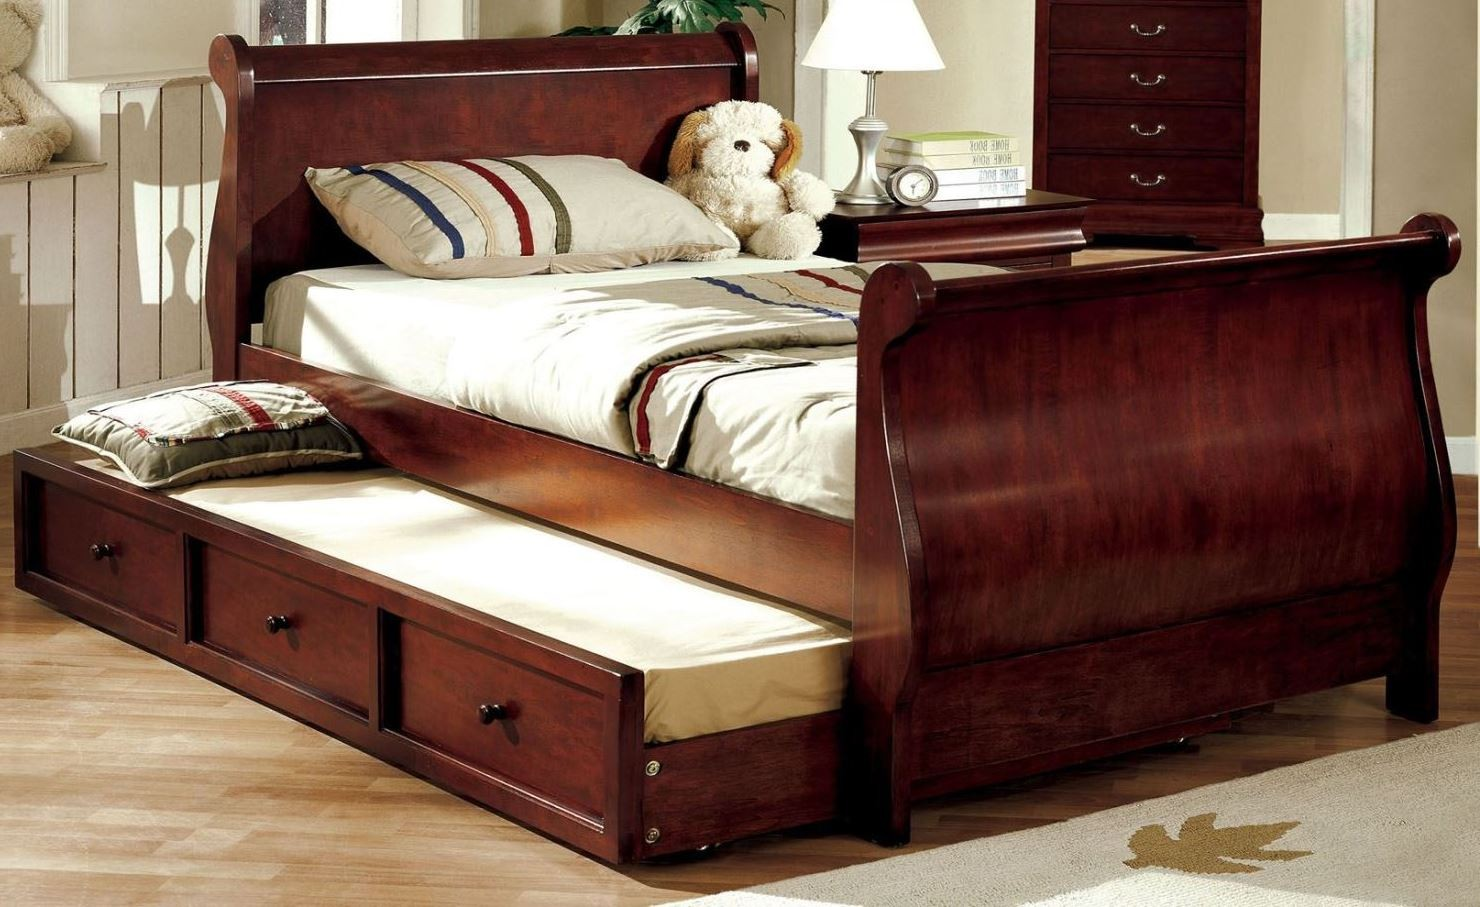 louis philippe jr dark cherry full trundle sleigh bed from furniture of america cm7828ctr full. Black Bedroom Furniture Sets. Home Design Ideas